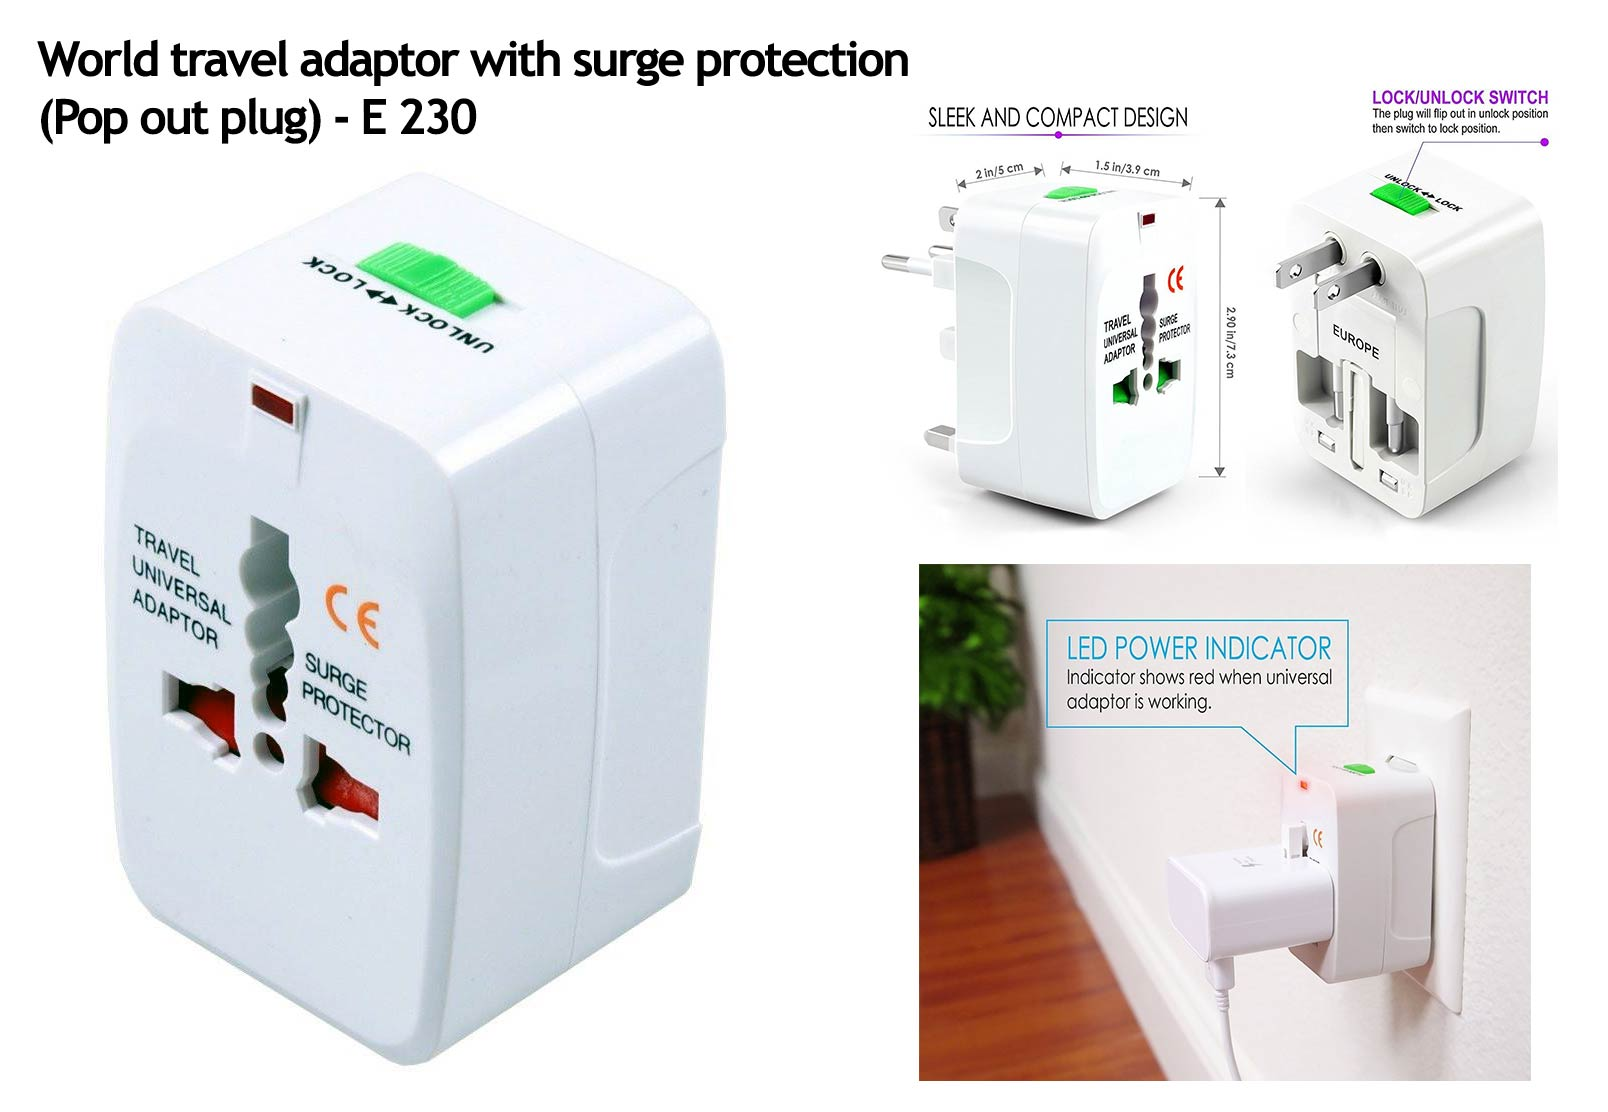 World travel adaptor with surge protection | Pop out plug (square)